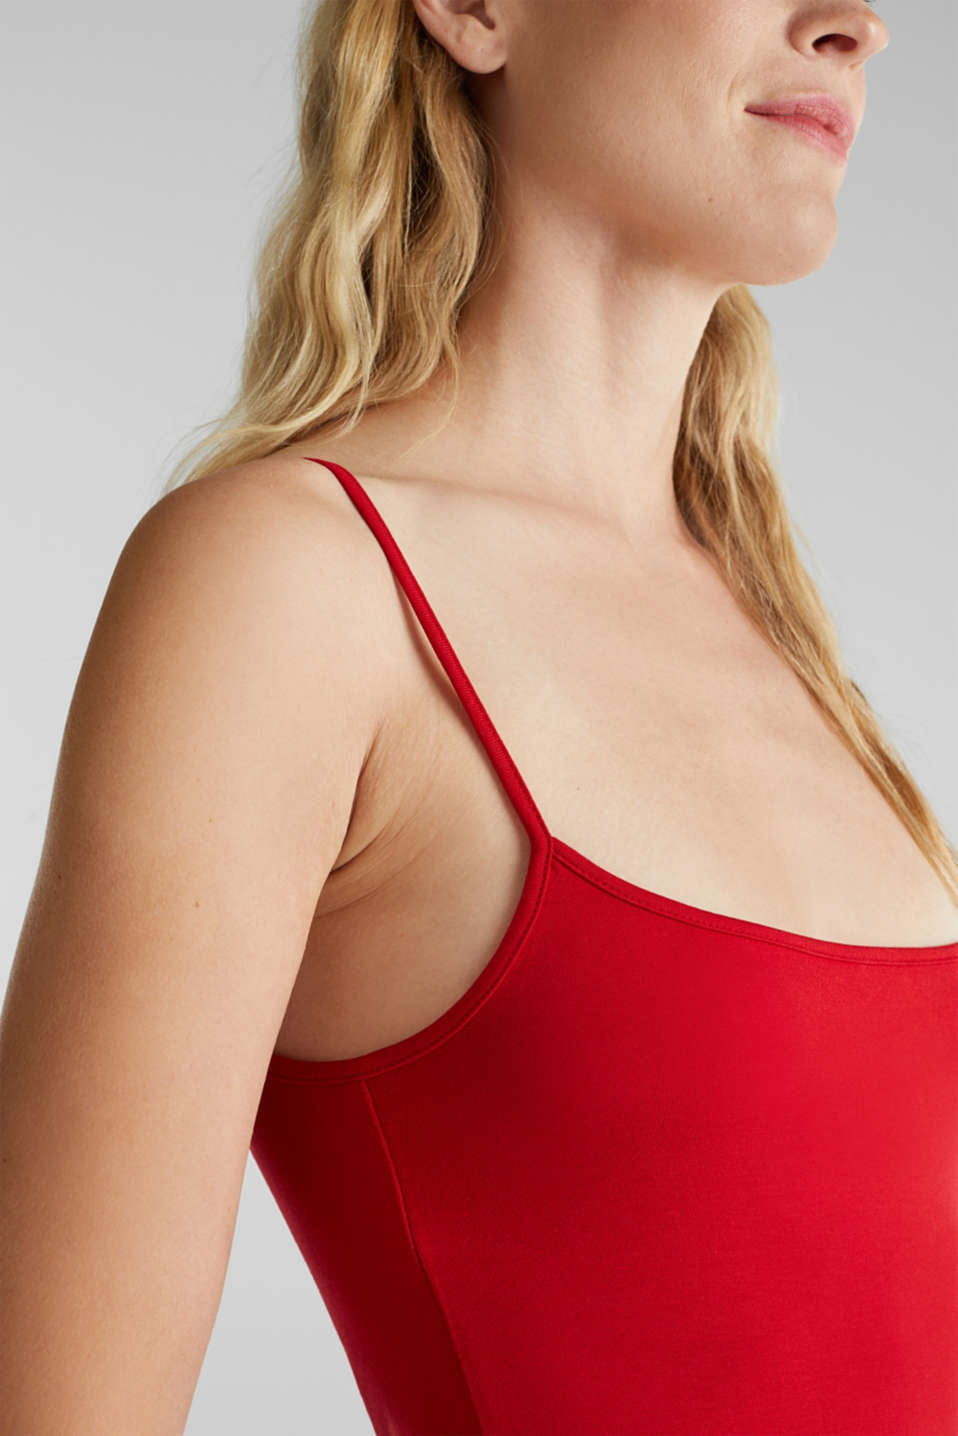 Stretch top with adjustable spaghetti straps, DARK RED, detail image number 2